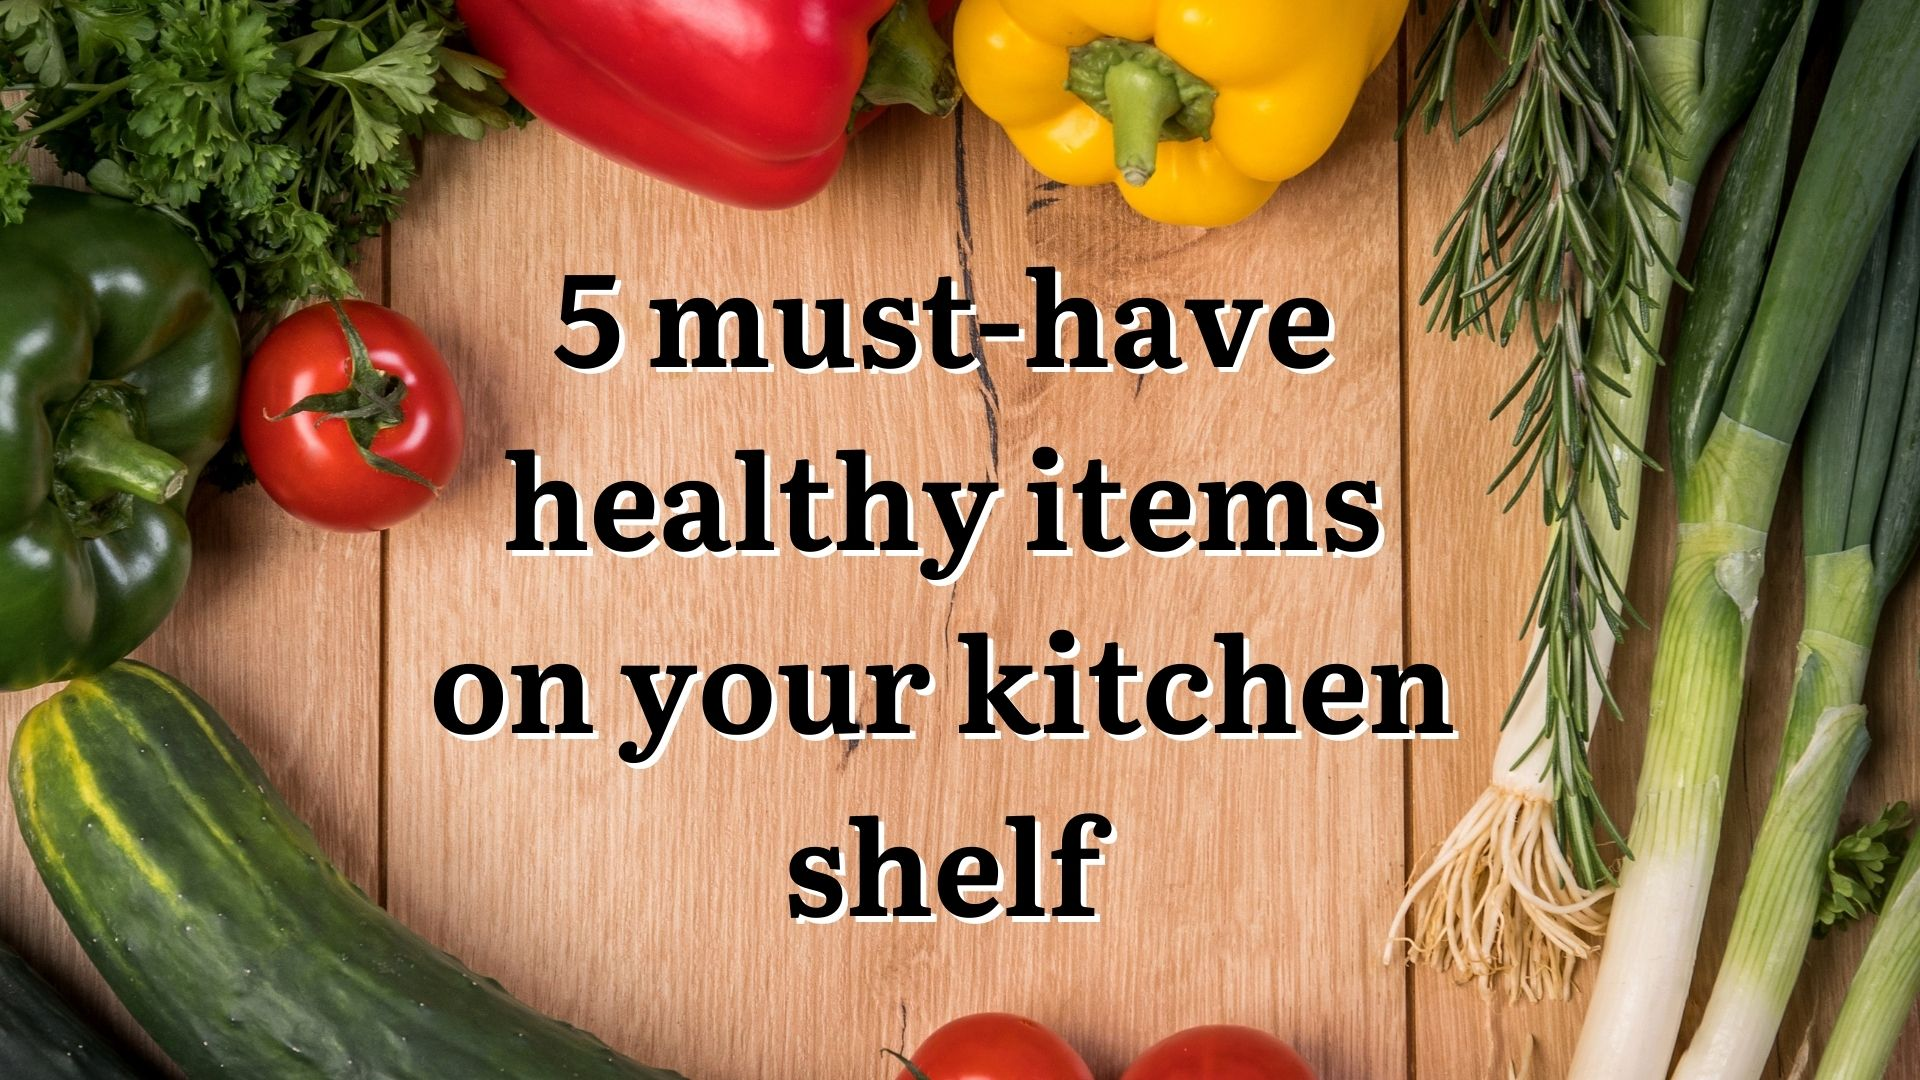 5 must-have healthy items on your kitchen shelf